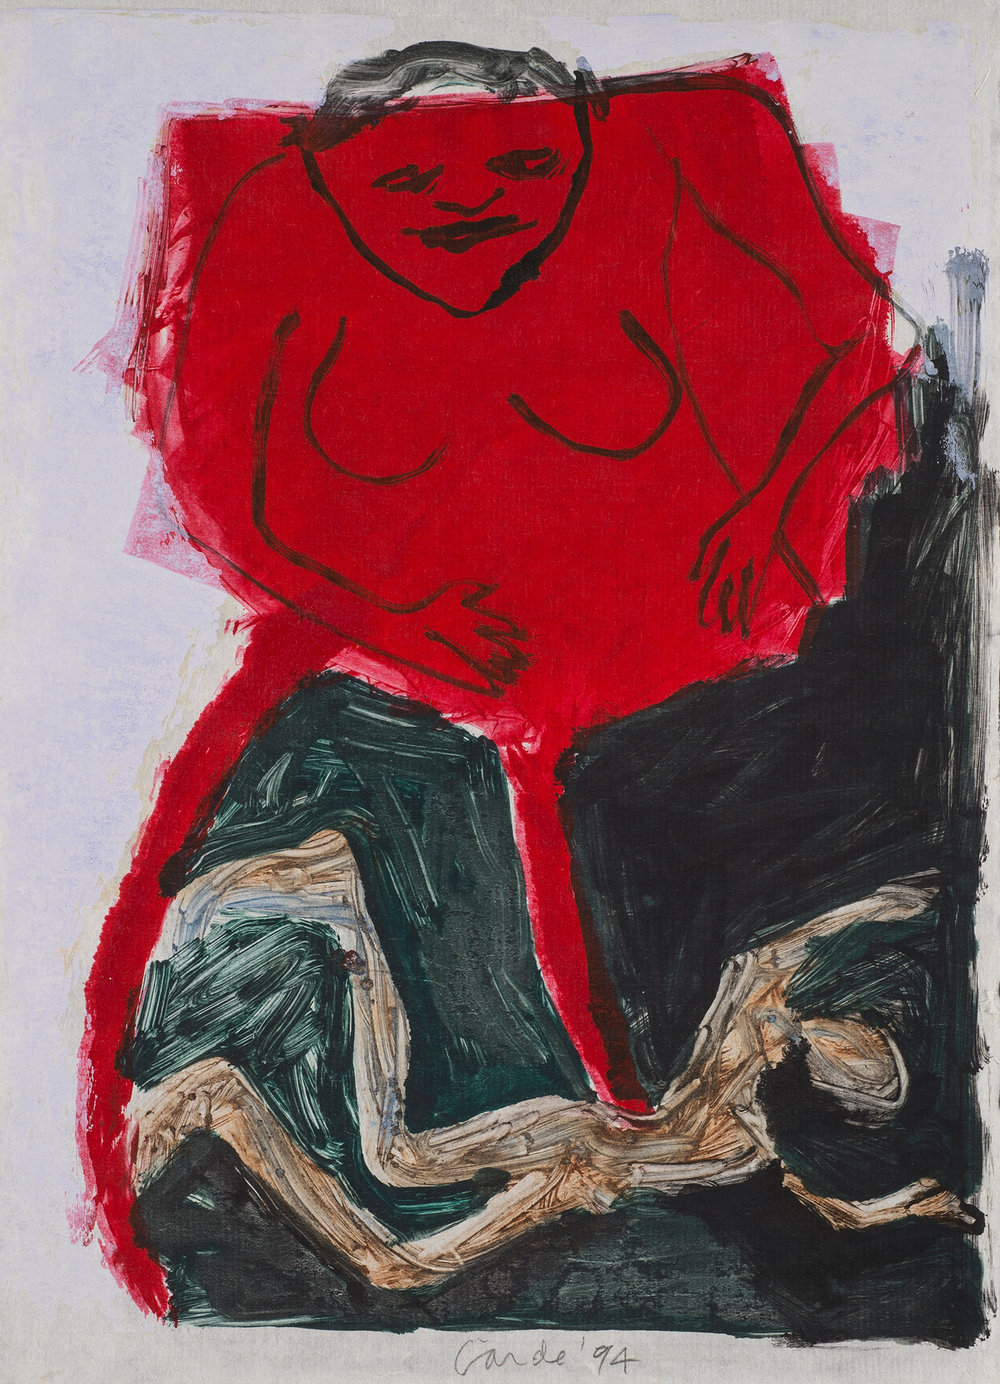 Untitled, 1987/1994. Monotype on paper, 17.5 x 13 in. (44 x 33 cm)